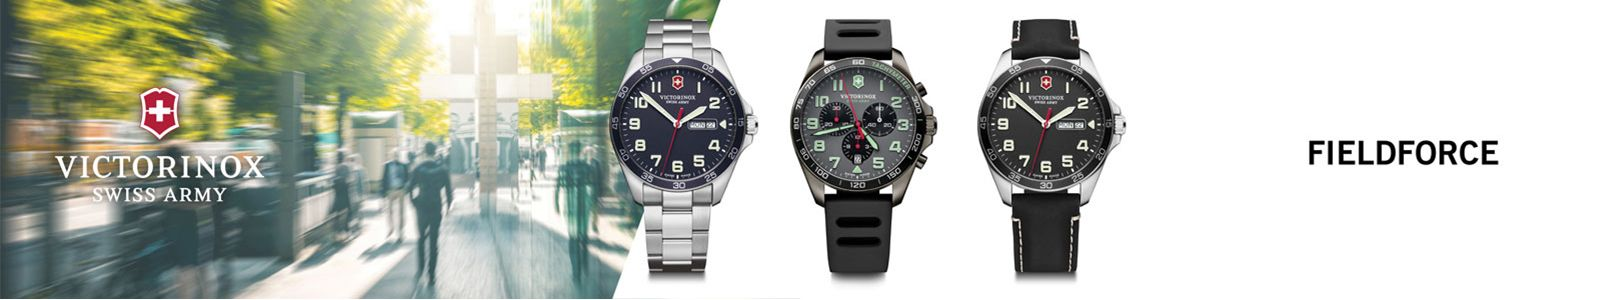 Victorinox Swiss Army, Fieldforce